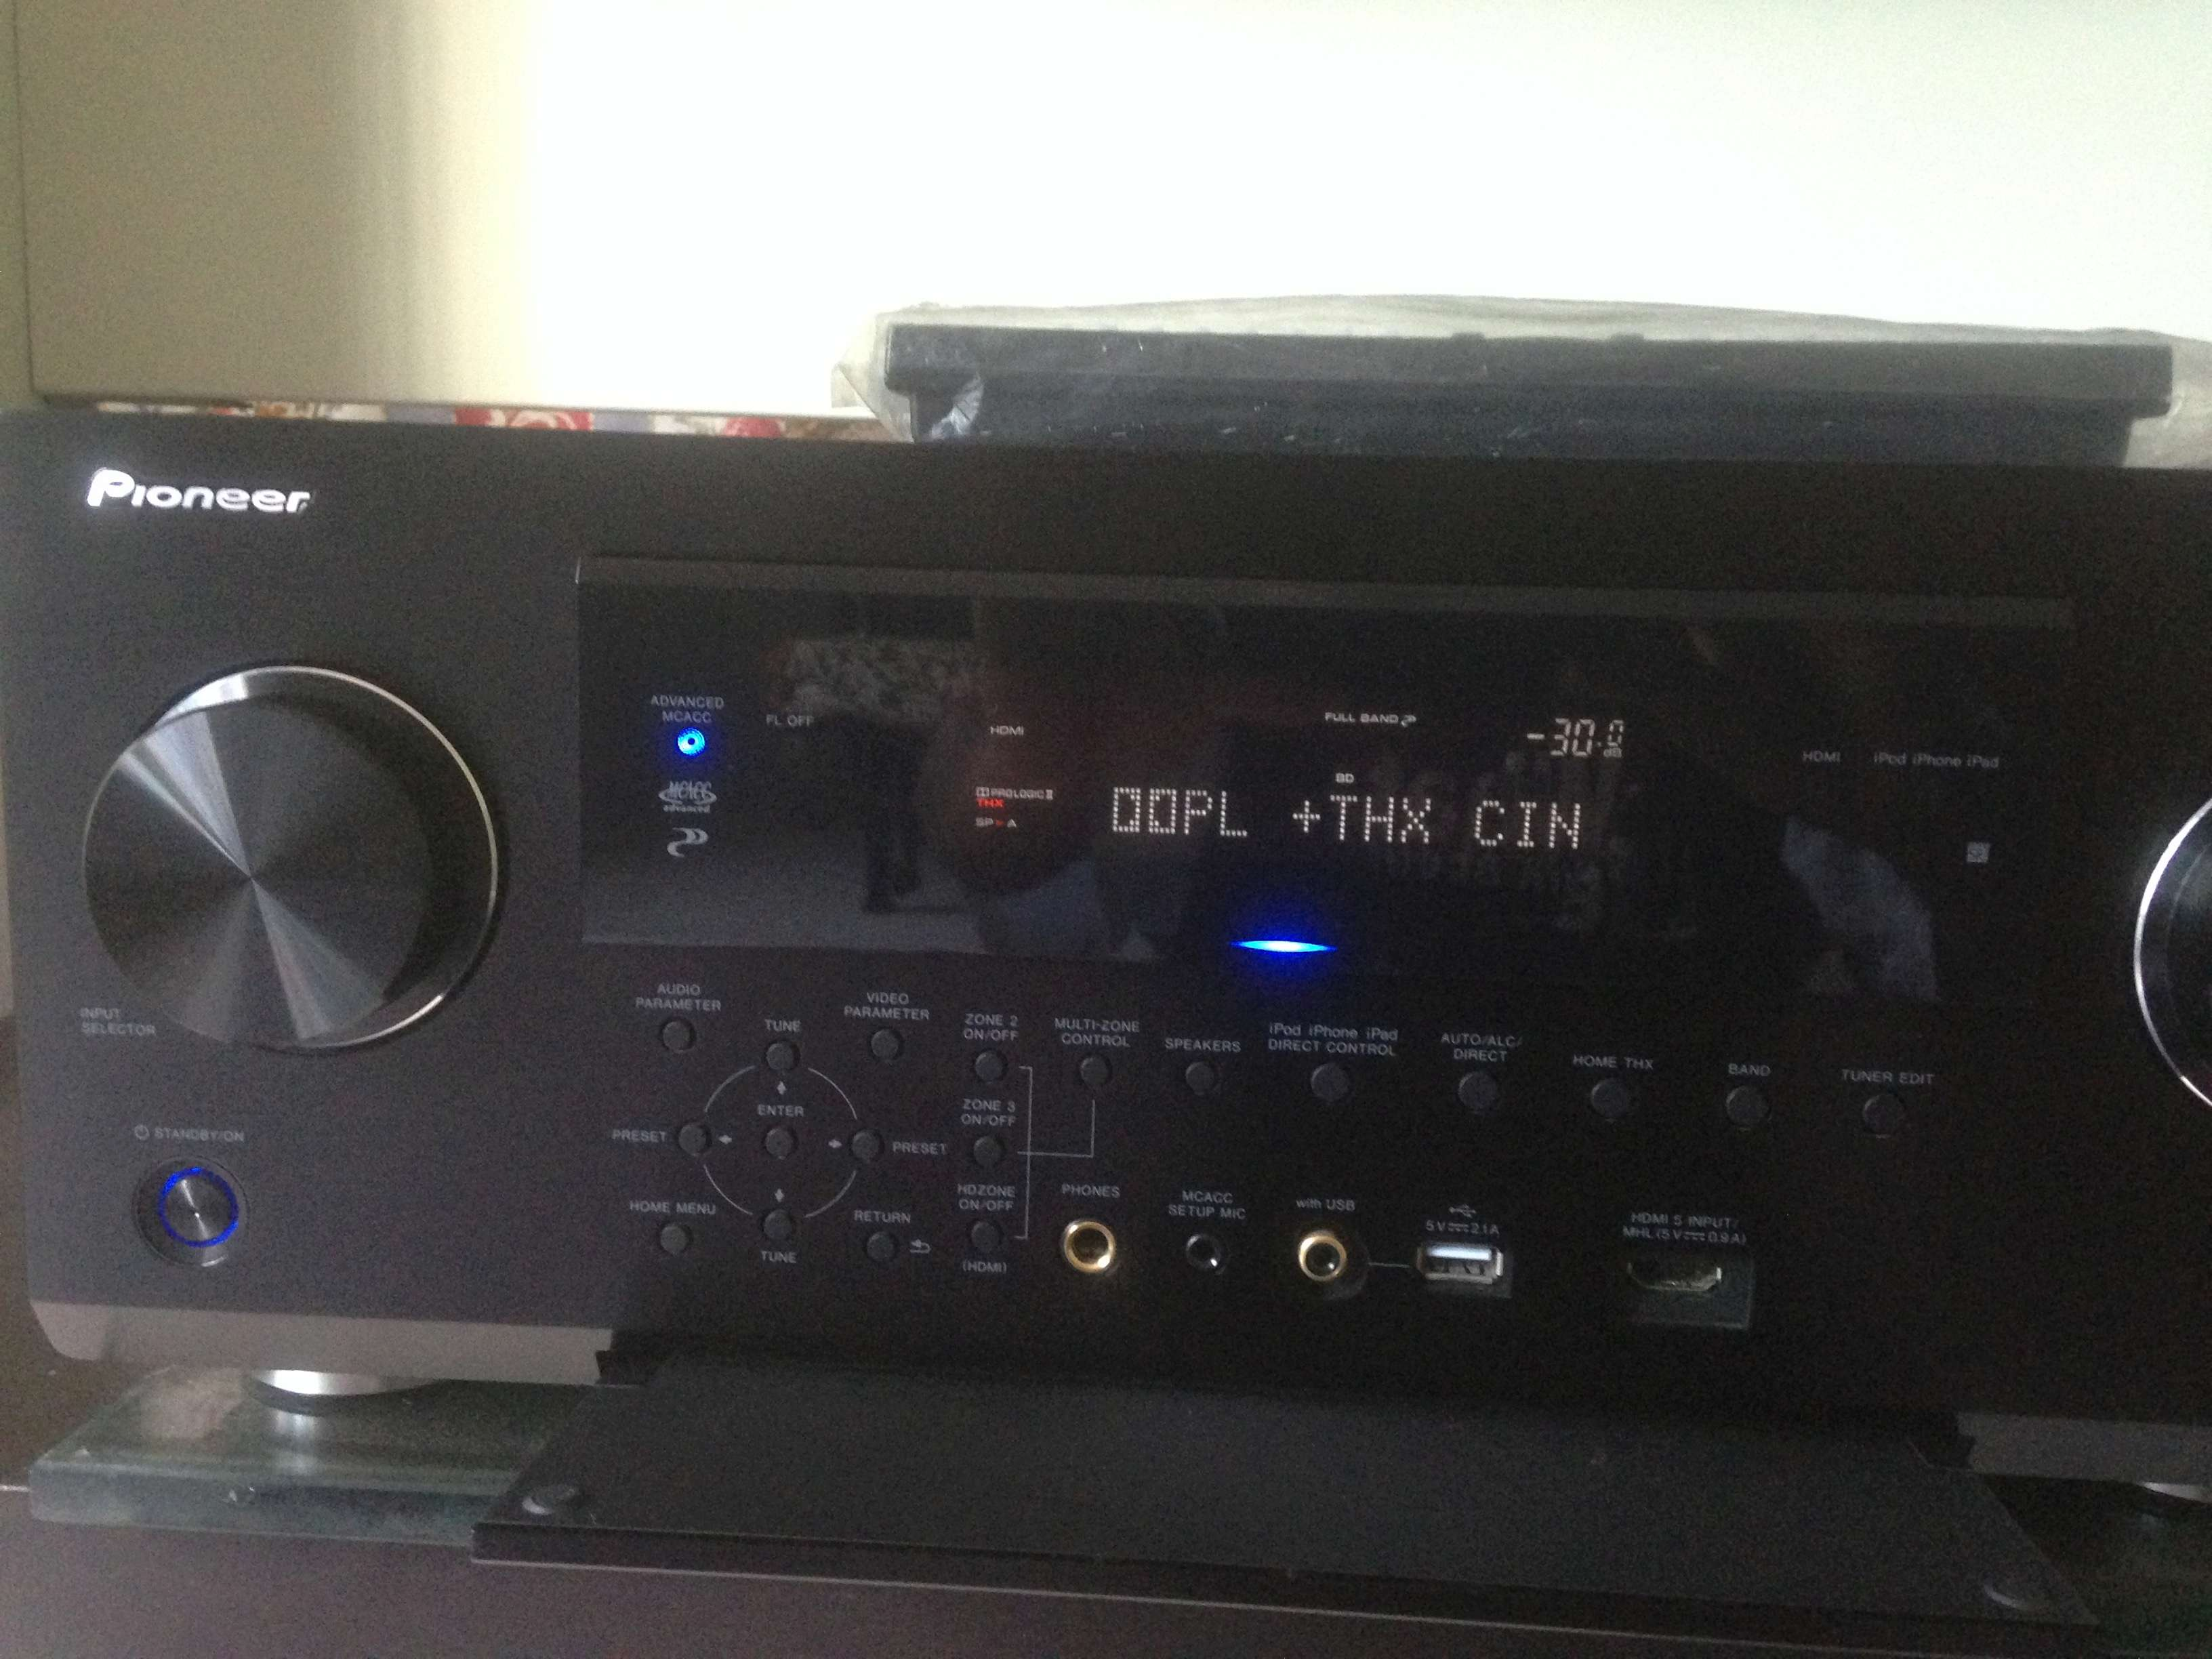 Pioneer SC-LX57 9.2-Channel 190 wats(11.2pre out) Img_5814